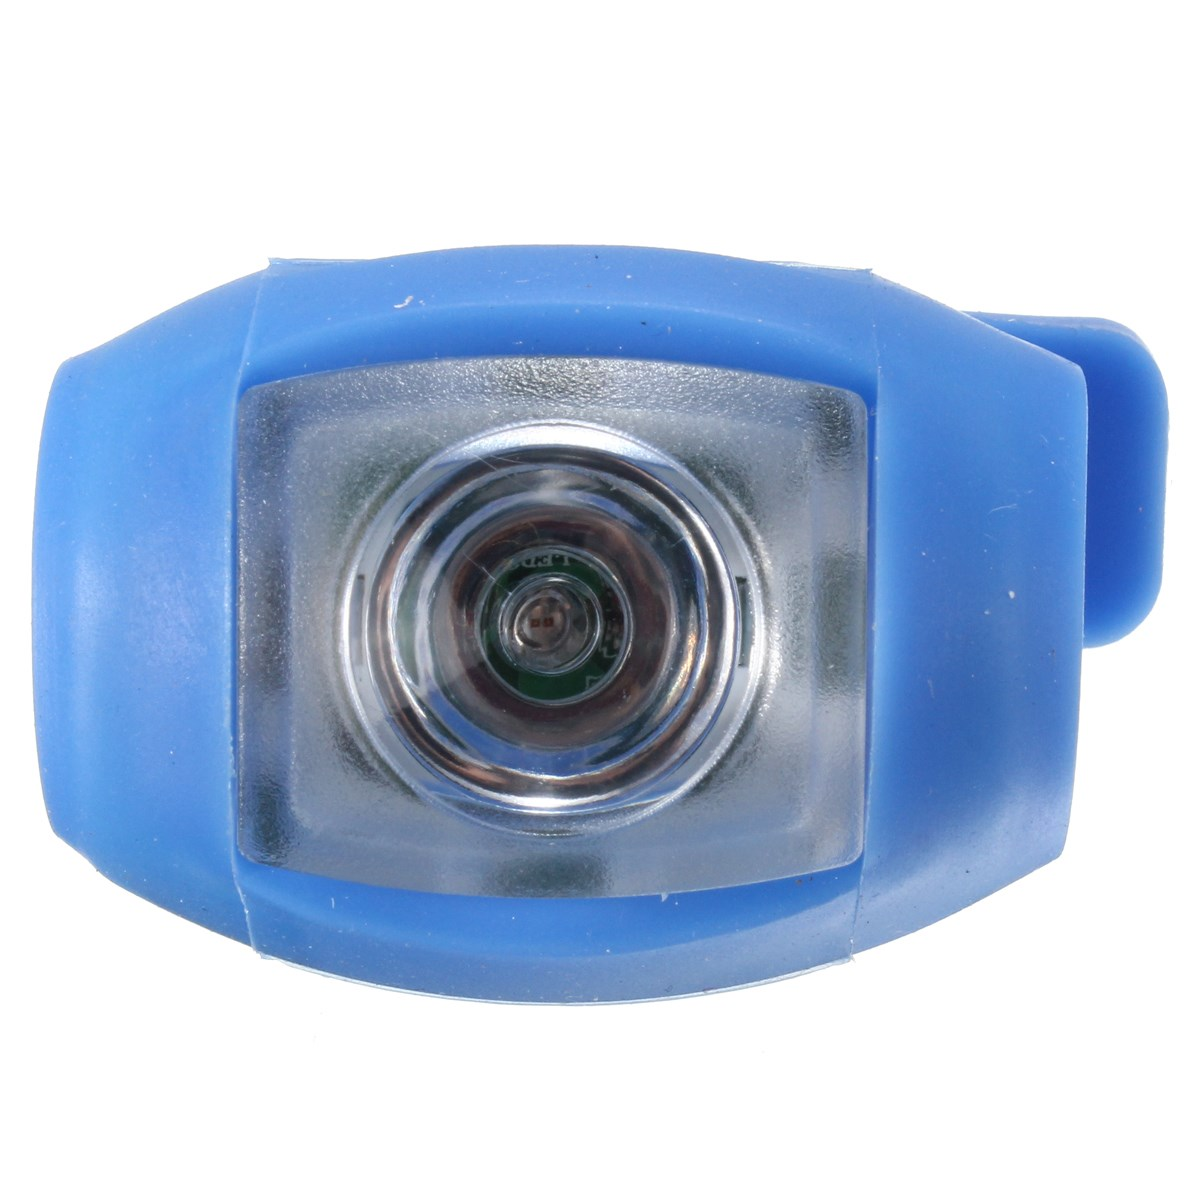 New USB Rechargeable LED Warning Rear Tail Lamp Bike Bicycle Cycling Light